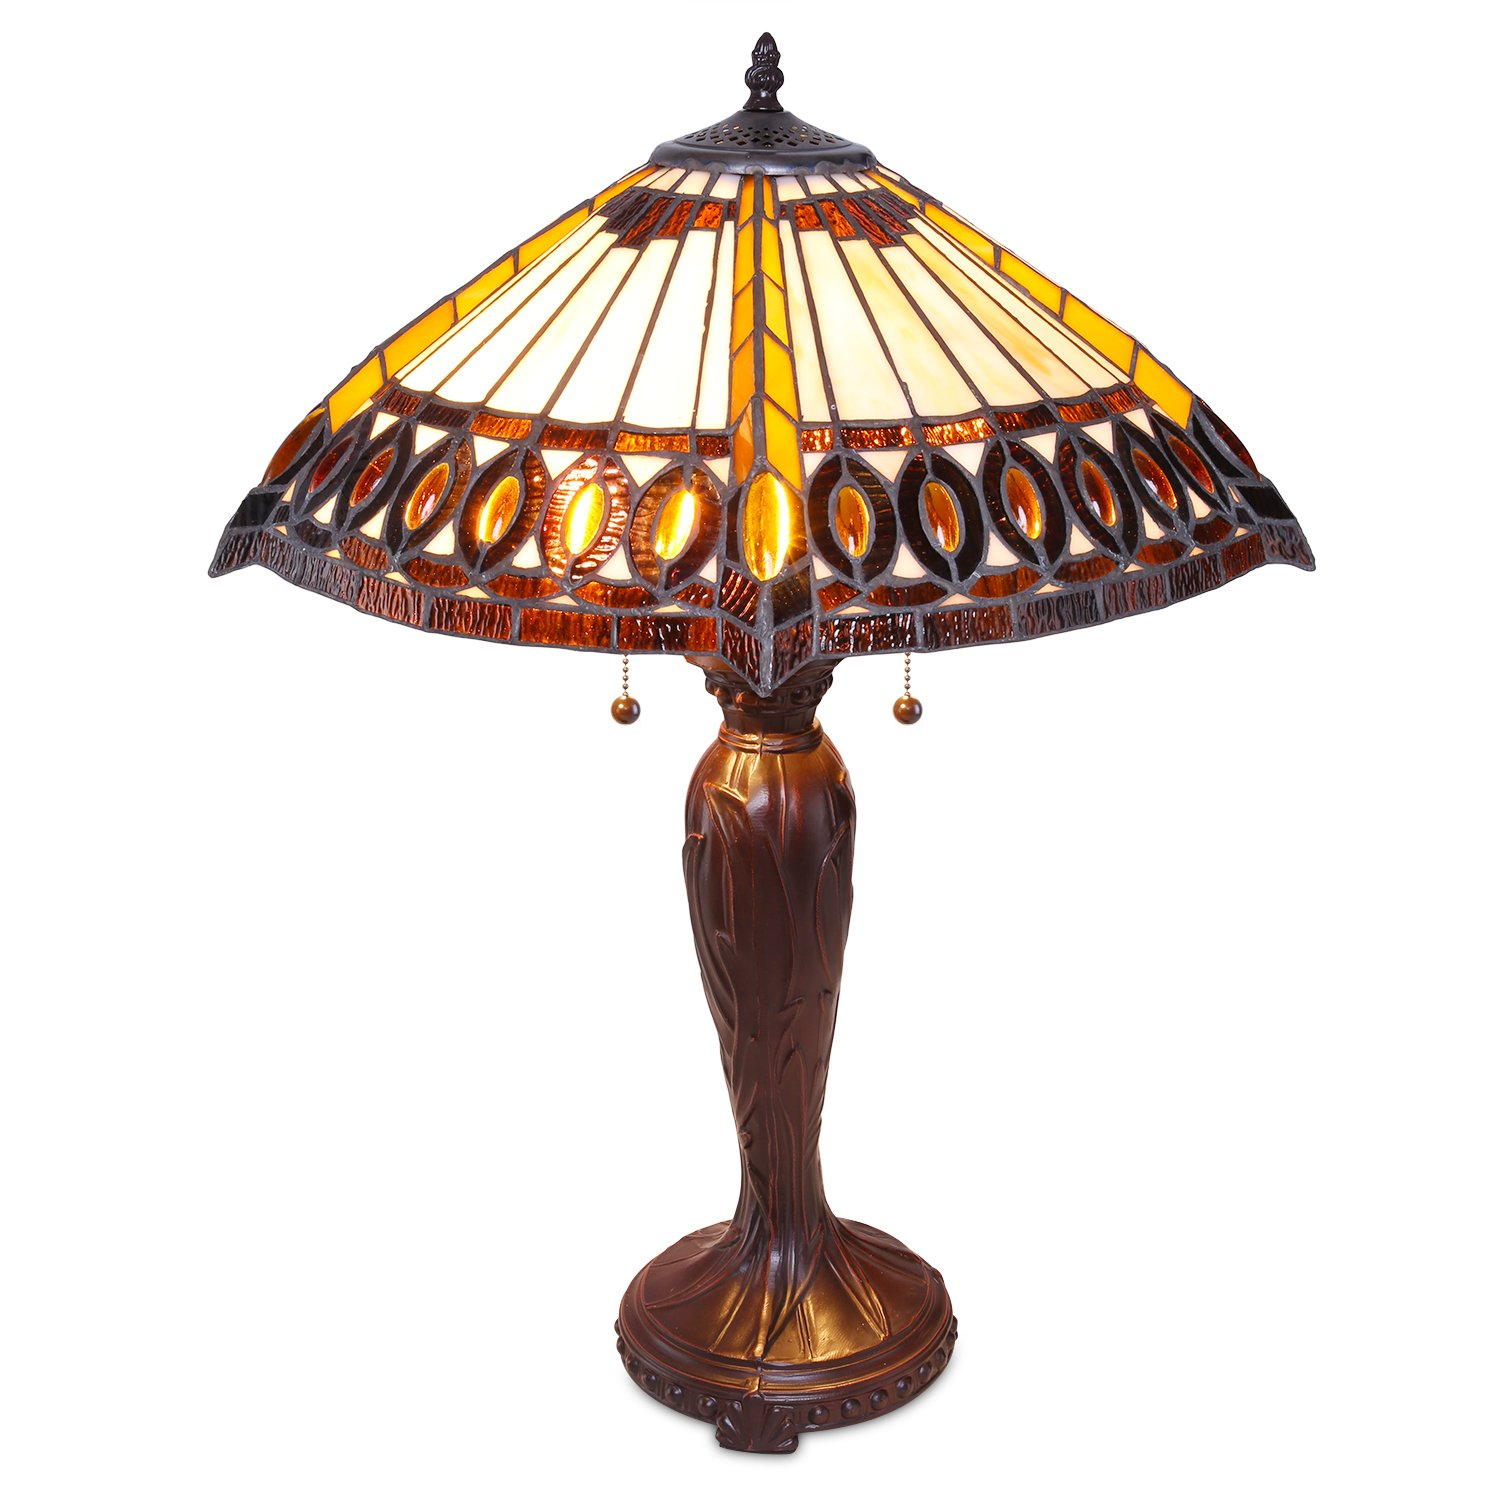 1908 Studios Amberjack Tiffany Table Lamp Table Lamps Tiffany